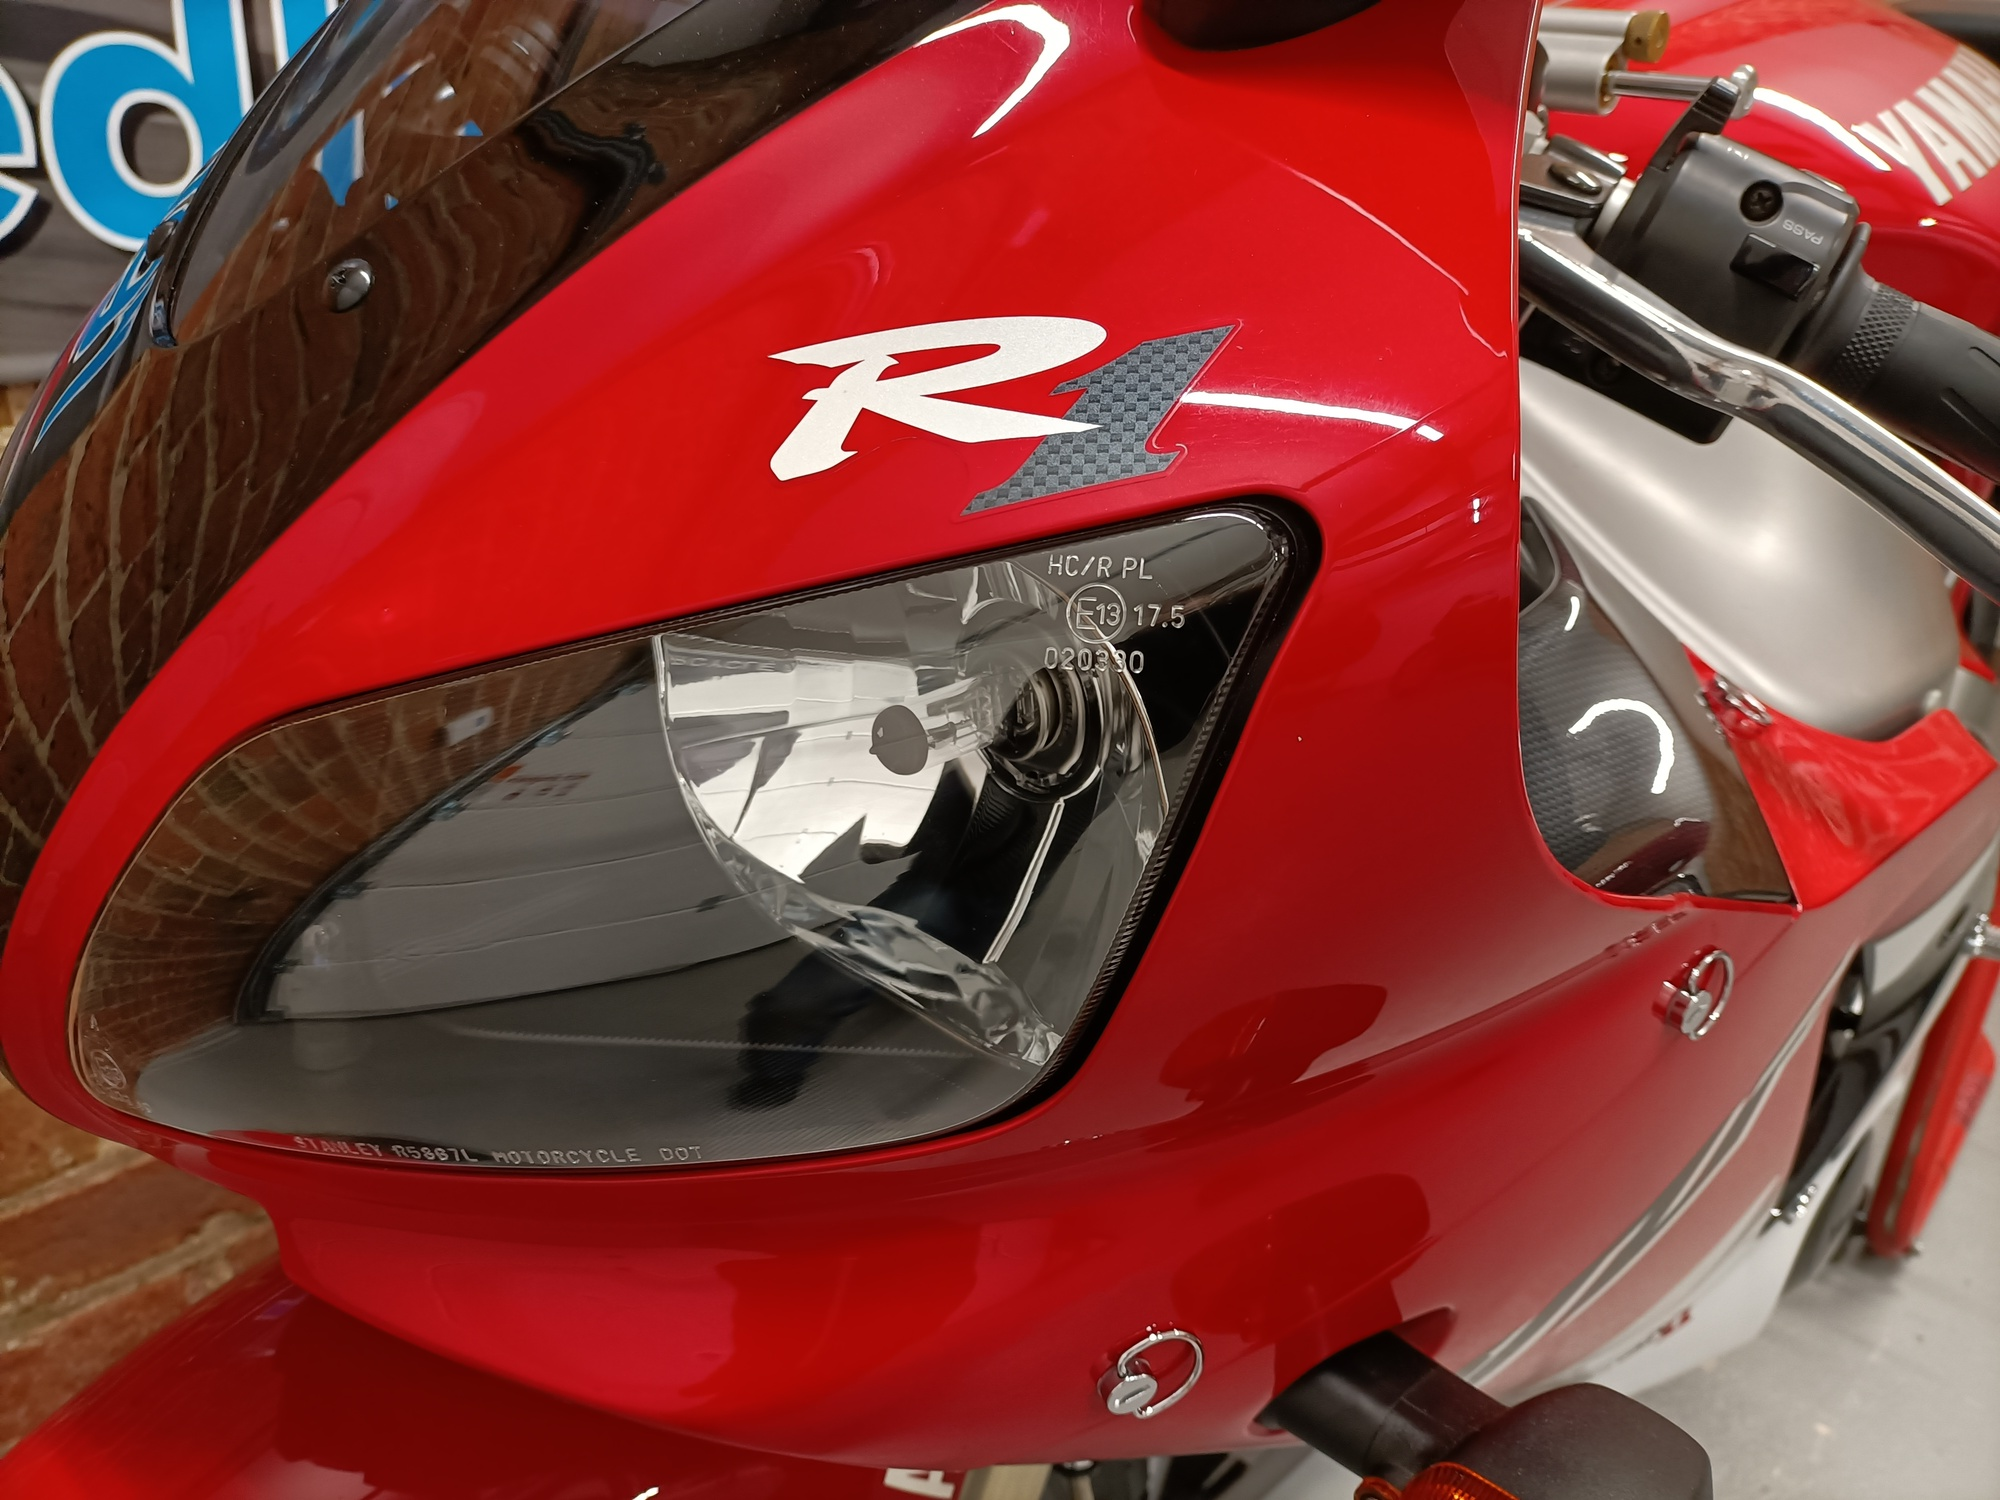 """YAMAHA YZF R1 4XV ONE OWNER LOW MILEAGE """"SHOW QUALITY CONDITION"""""""